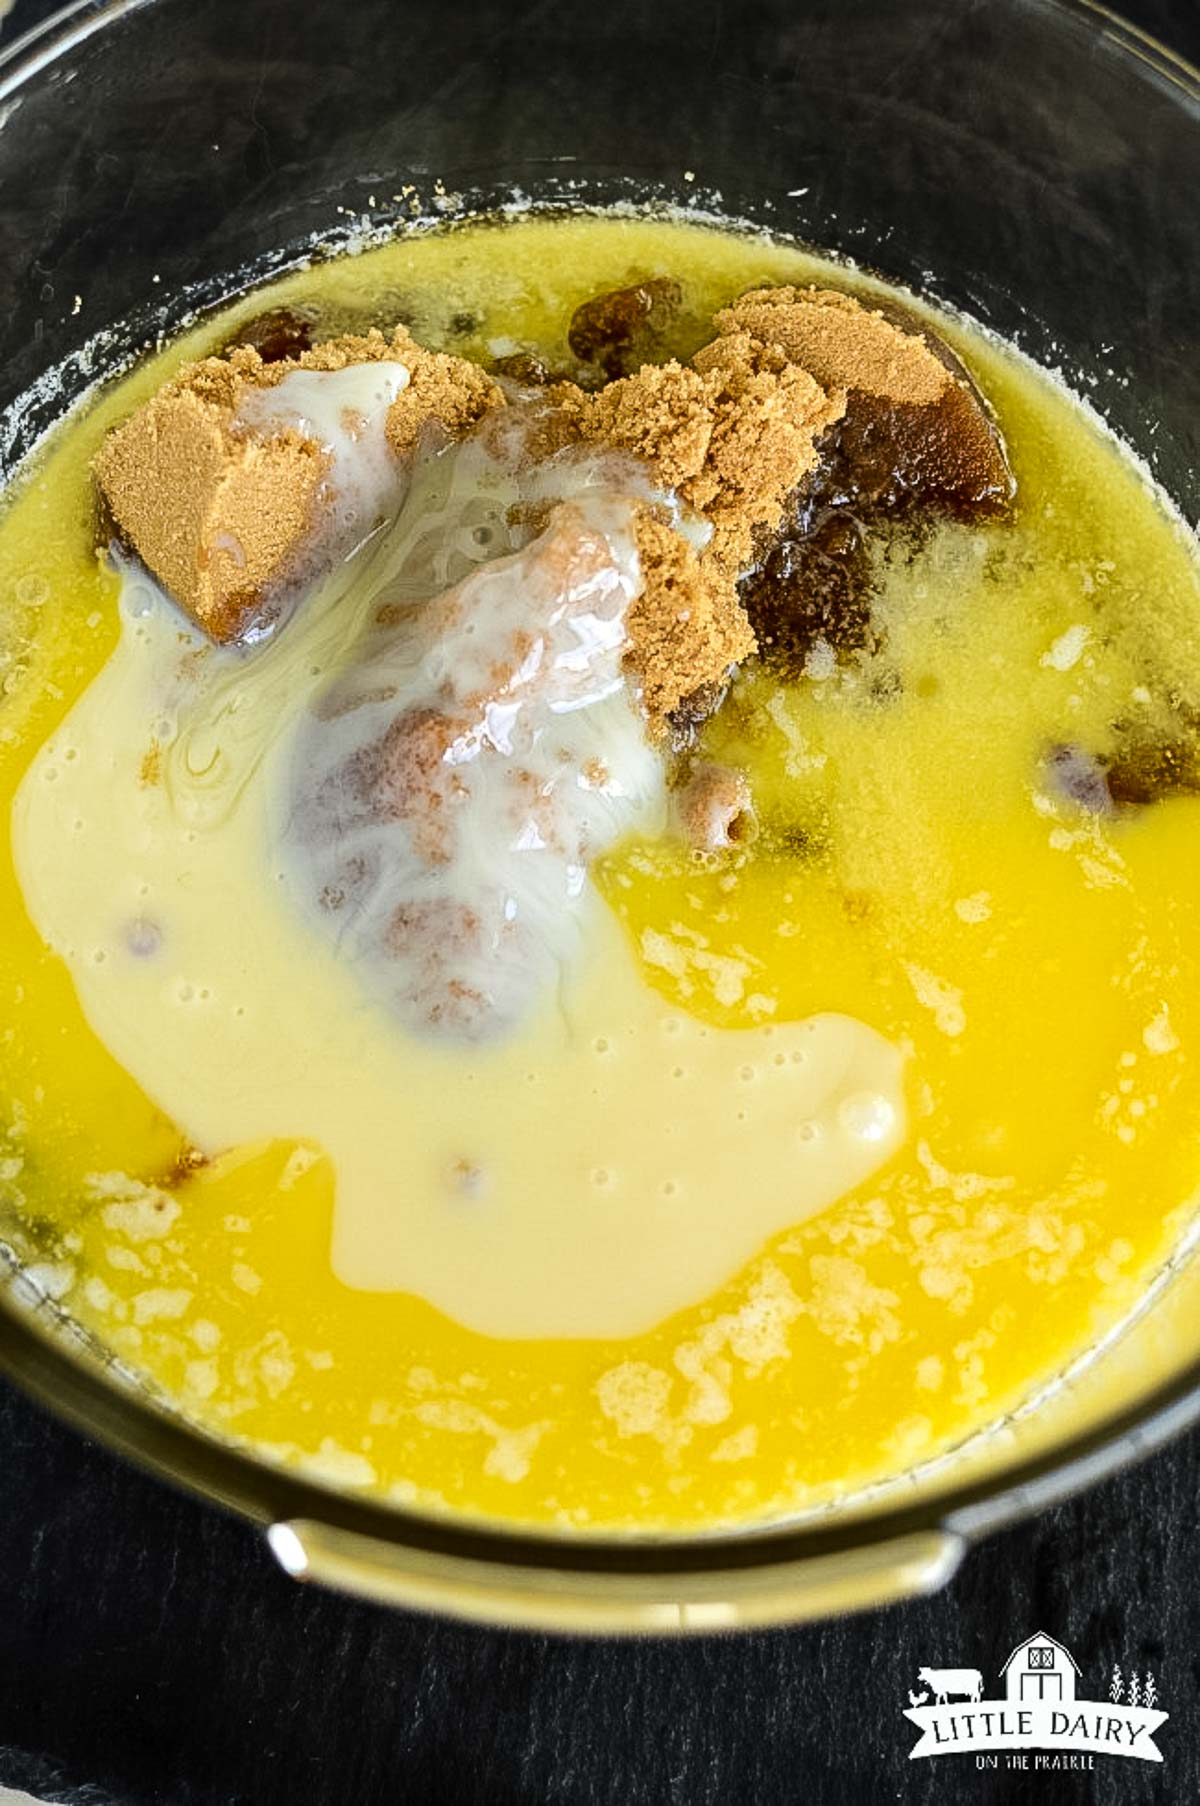 Melted butter, sweetened condensed milk, corn syrup and brown sugar in a glass bowl.